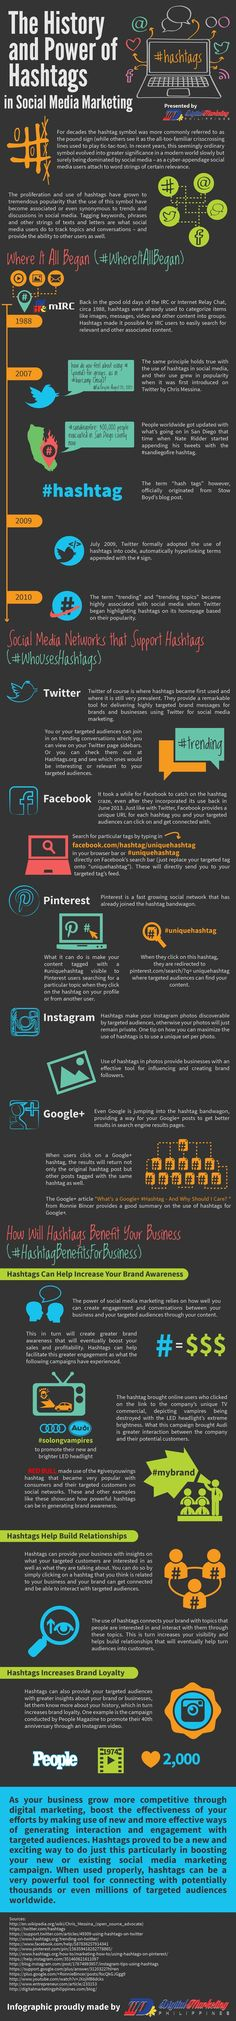 History Hashtag Social Marketing by Digital Marketing Philippines | webpixelkonsum — Konzepte für Online-Strategien